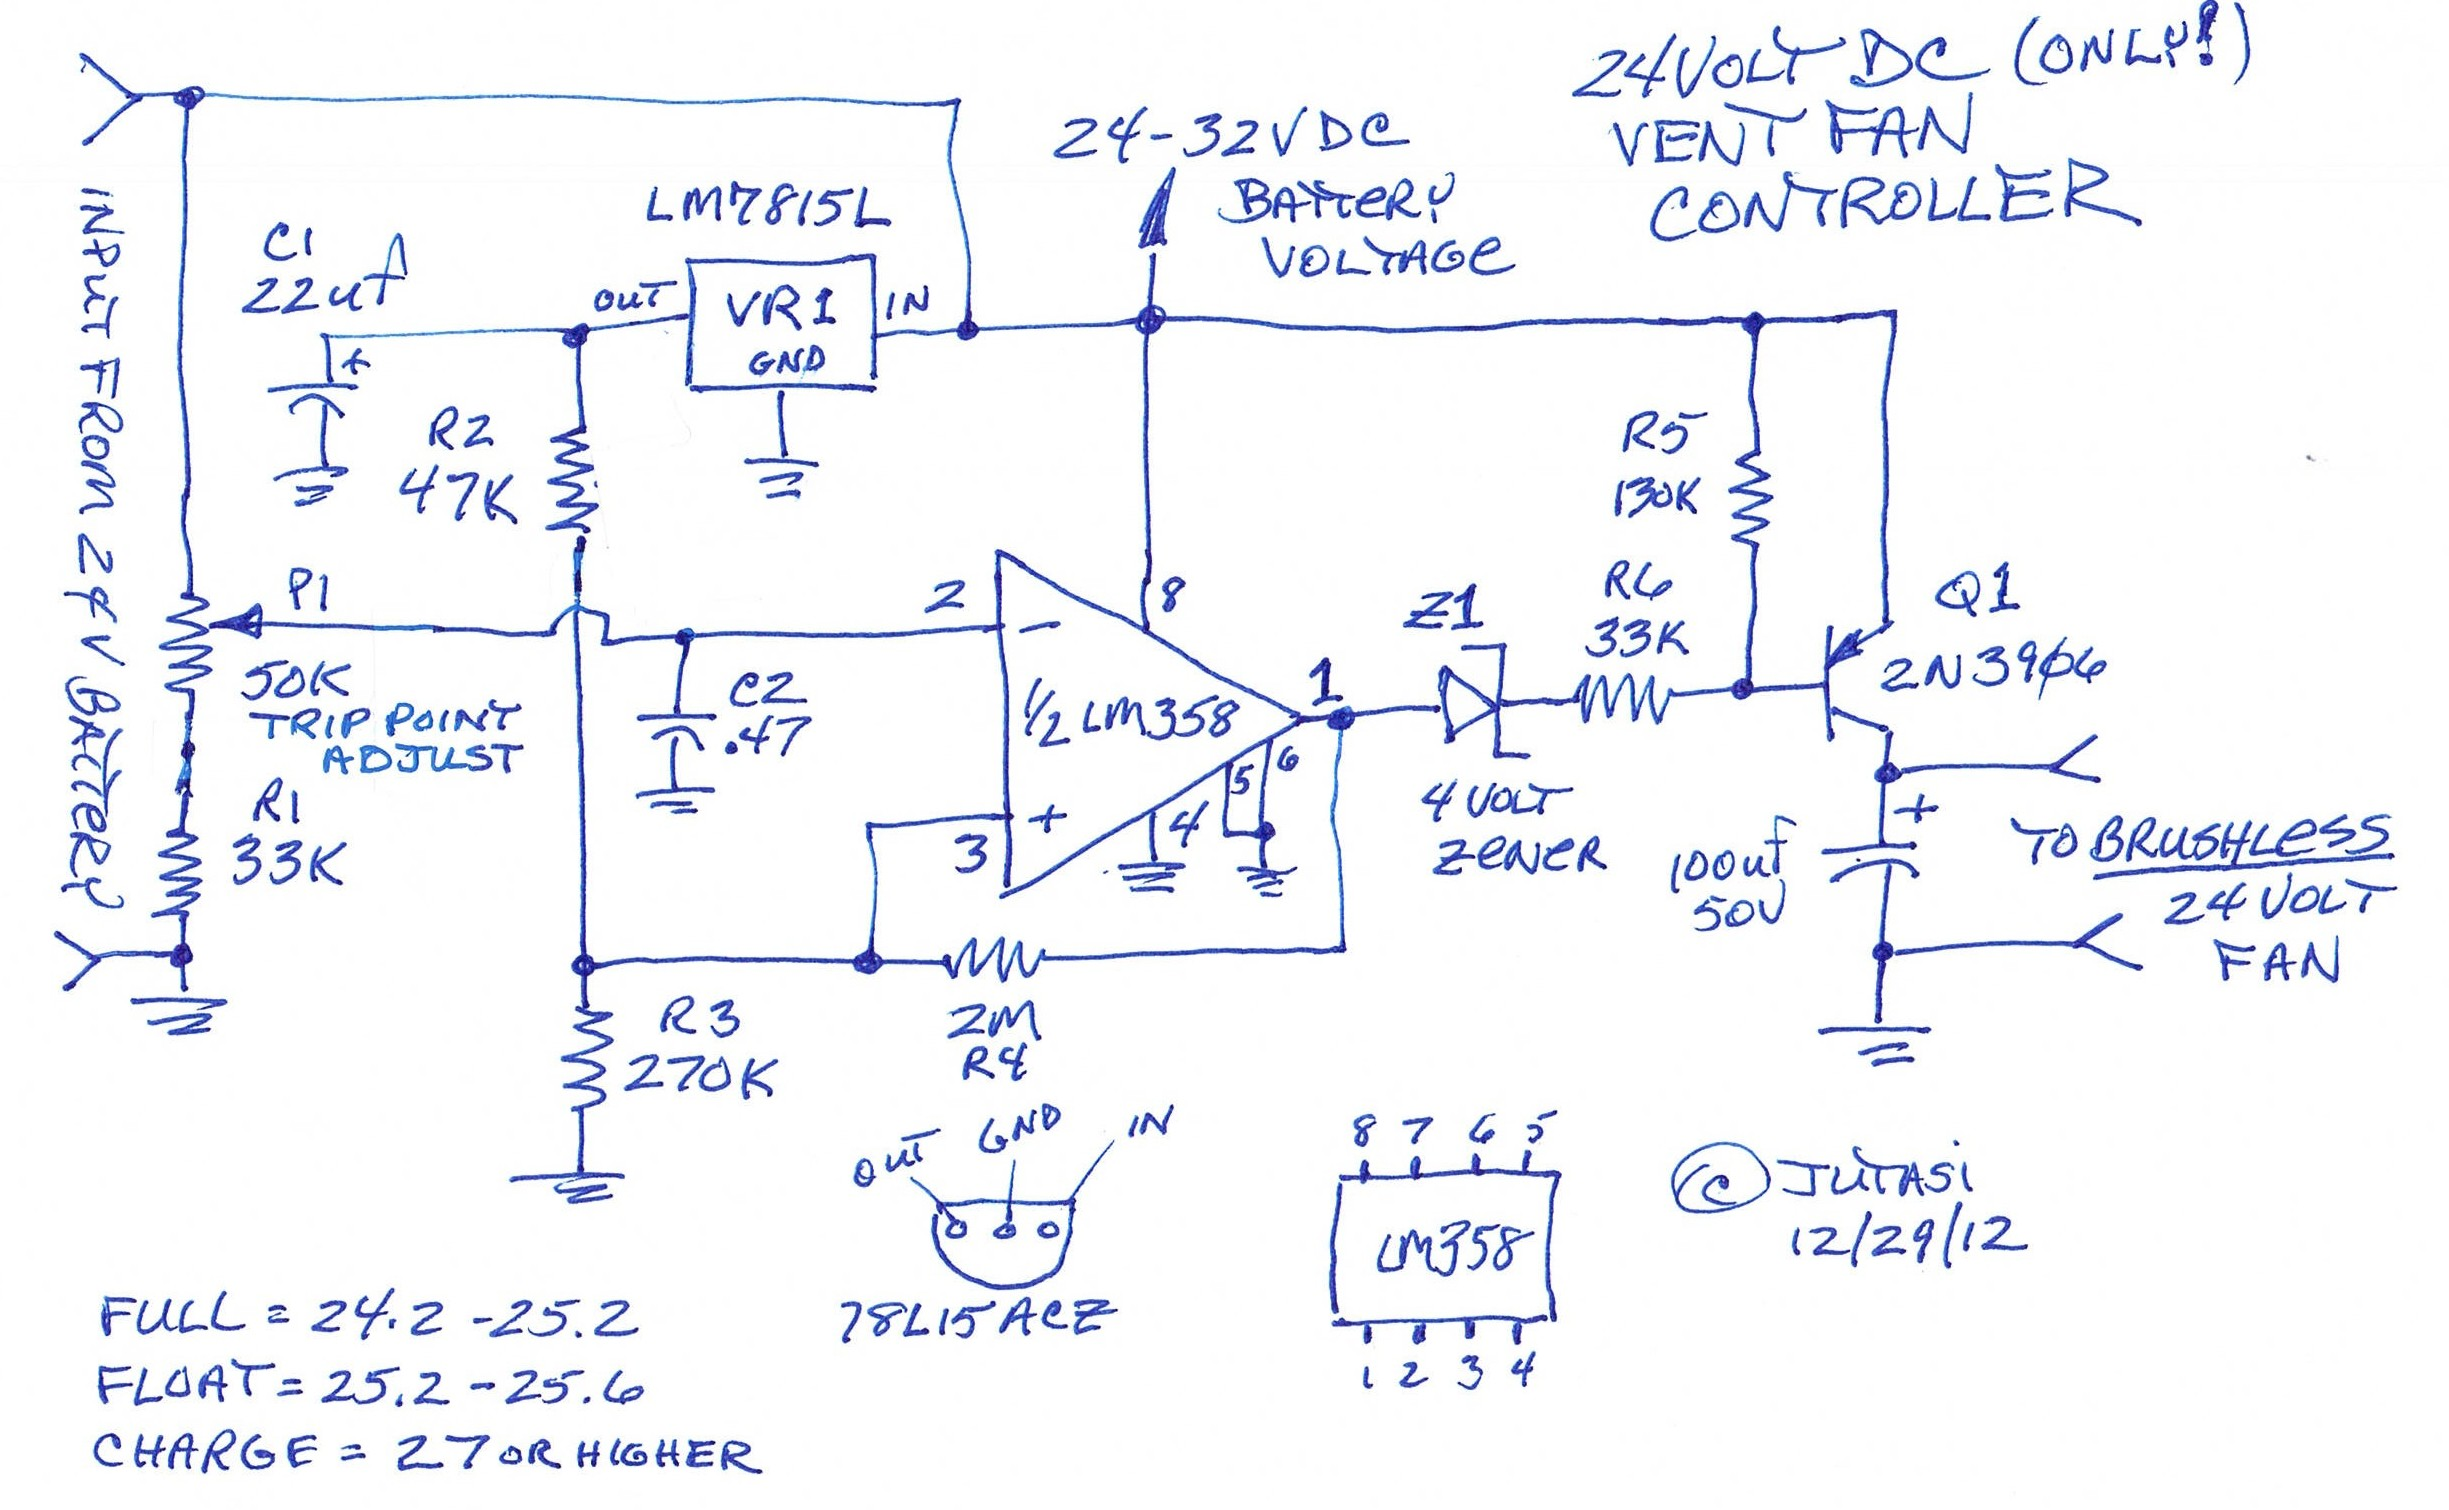 24 Volt Battery Box Vent Fan Control Circuit - schematic